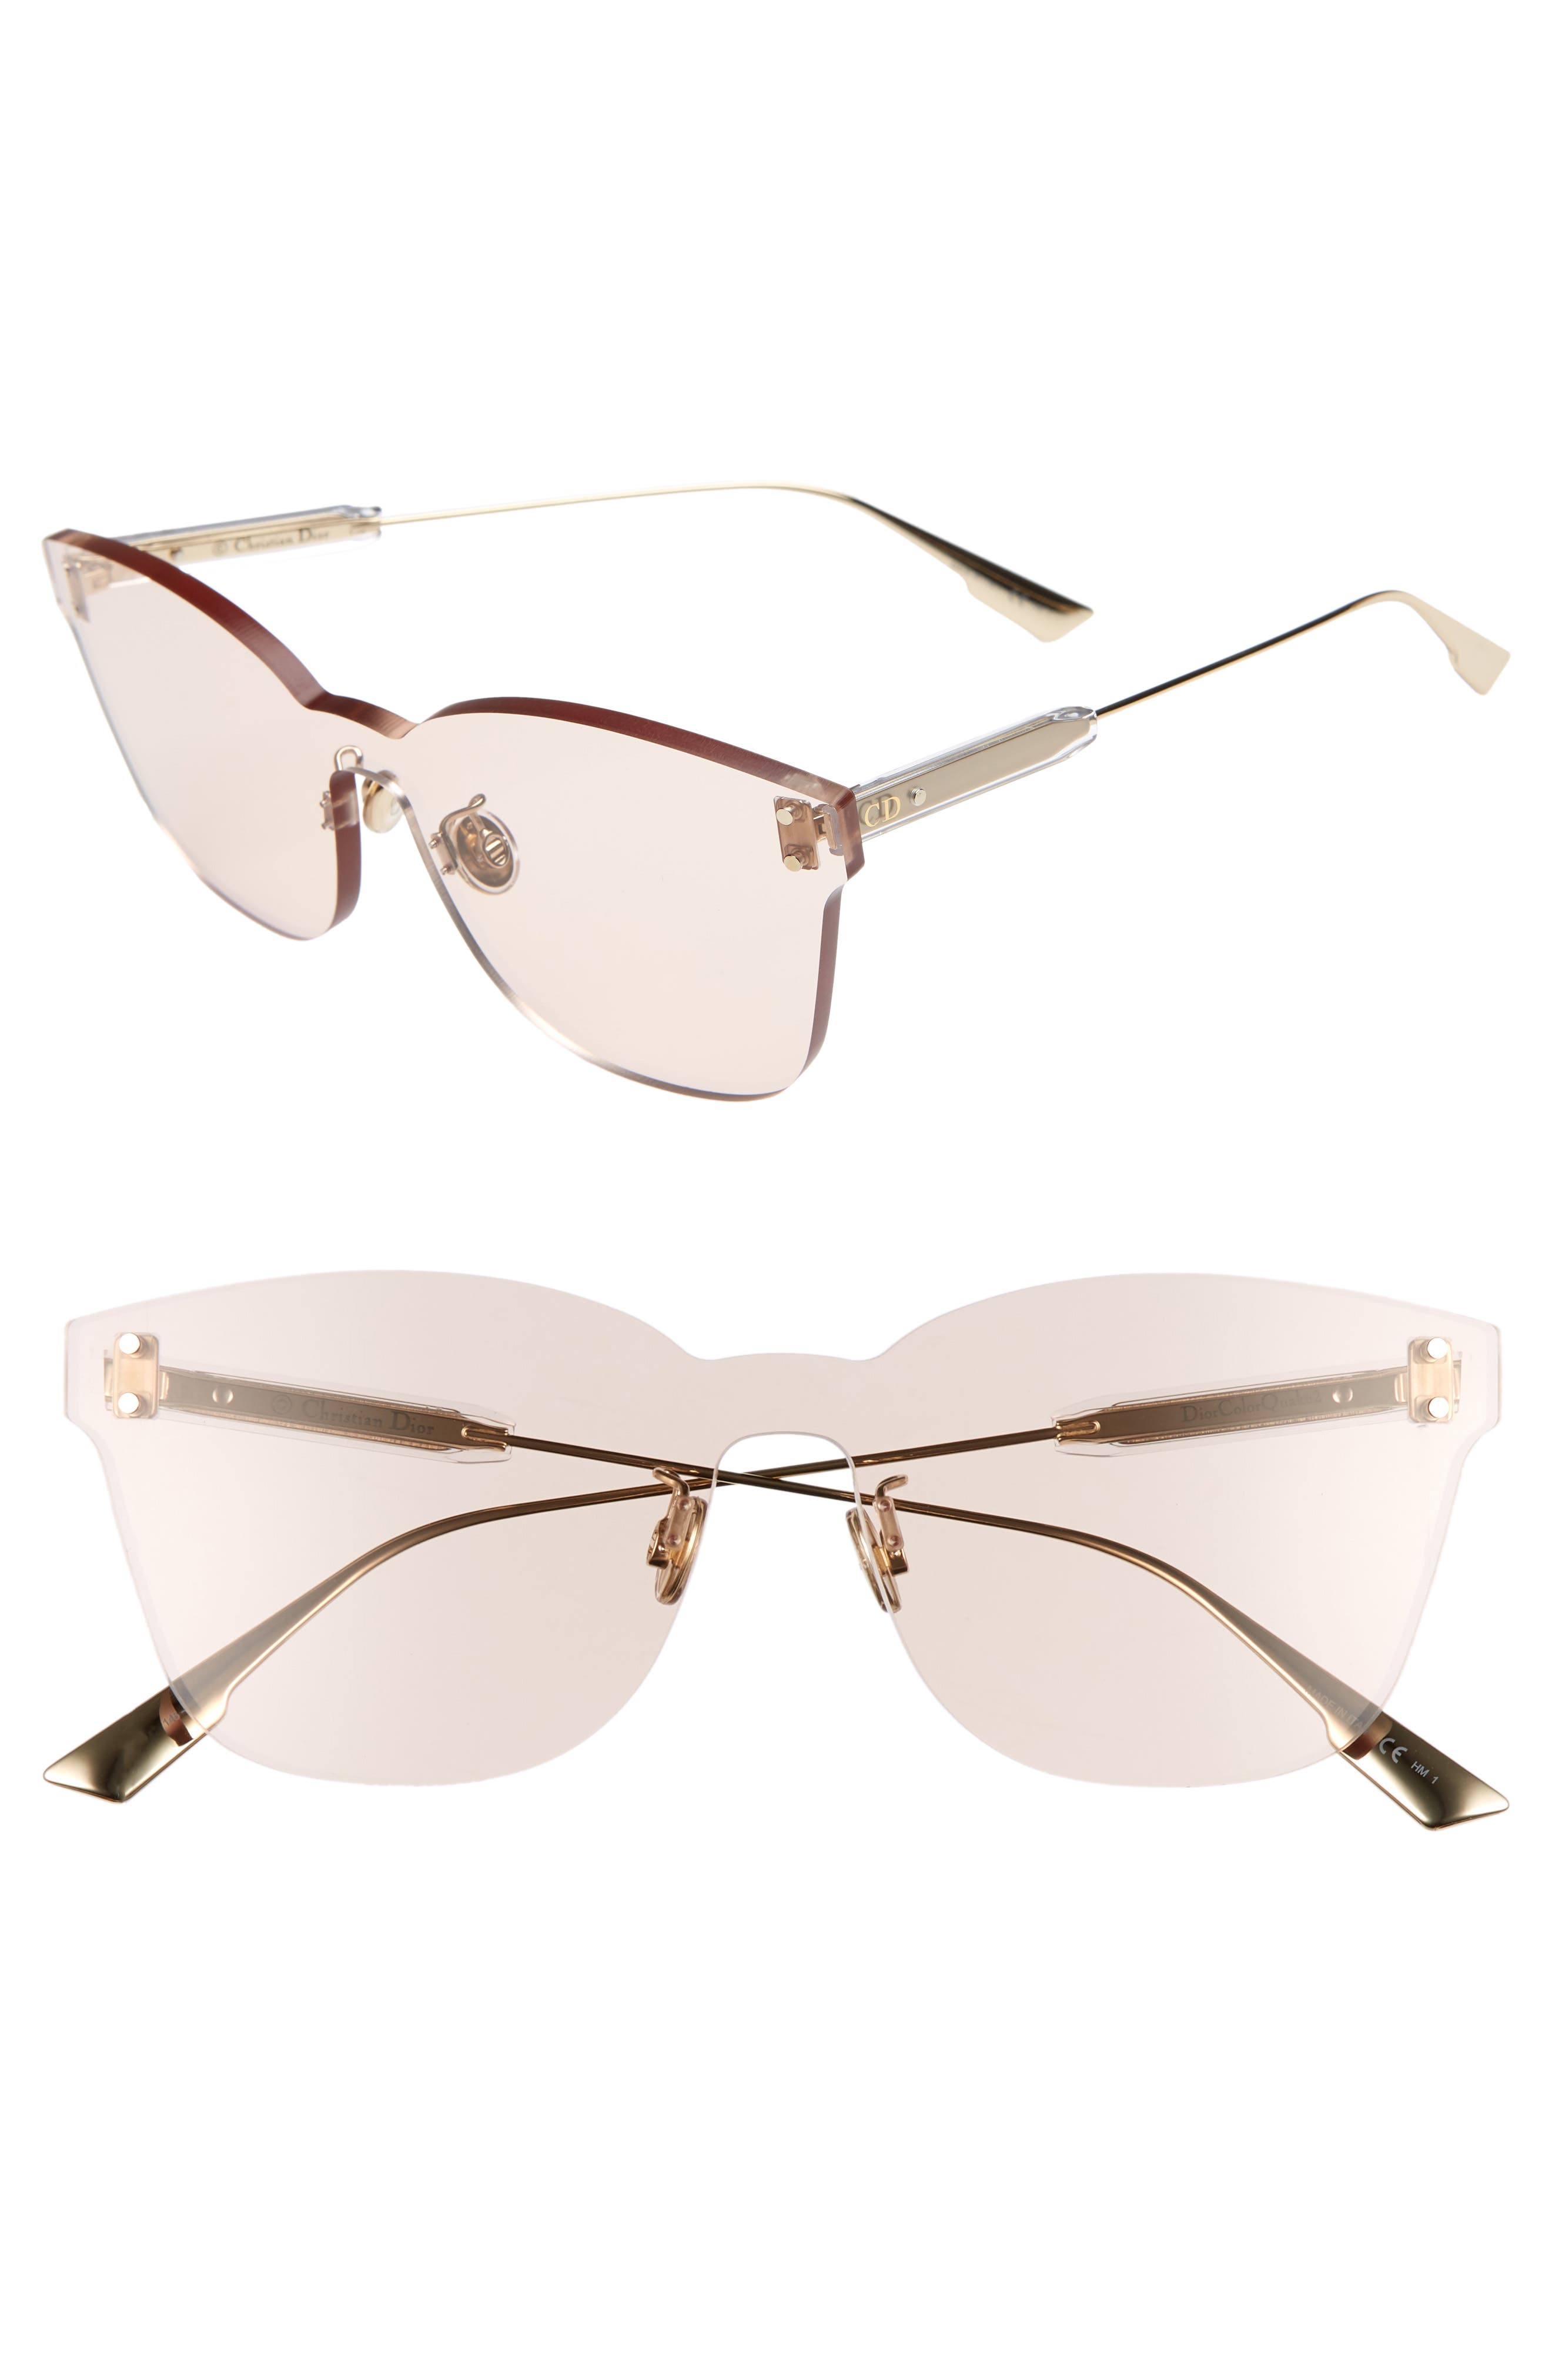 Christian Dior Quake2 135Mm Rimless Shield Sunglasses - Nude